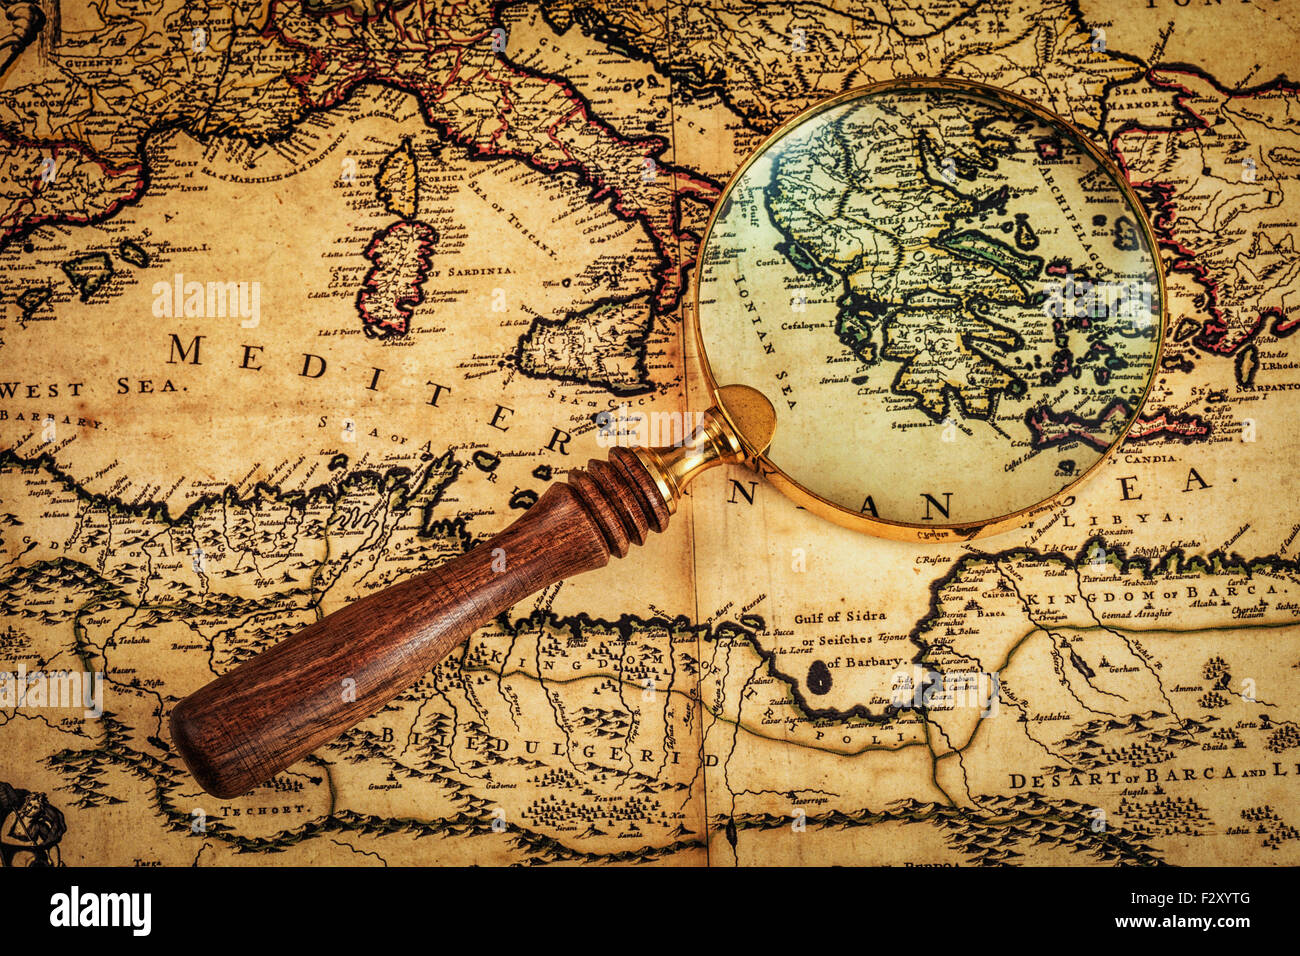 Old vintage magnifying glass on ancient map - Stock Image